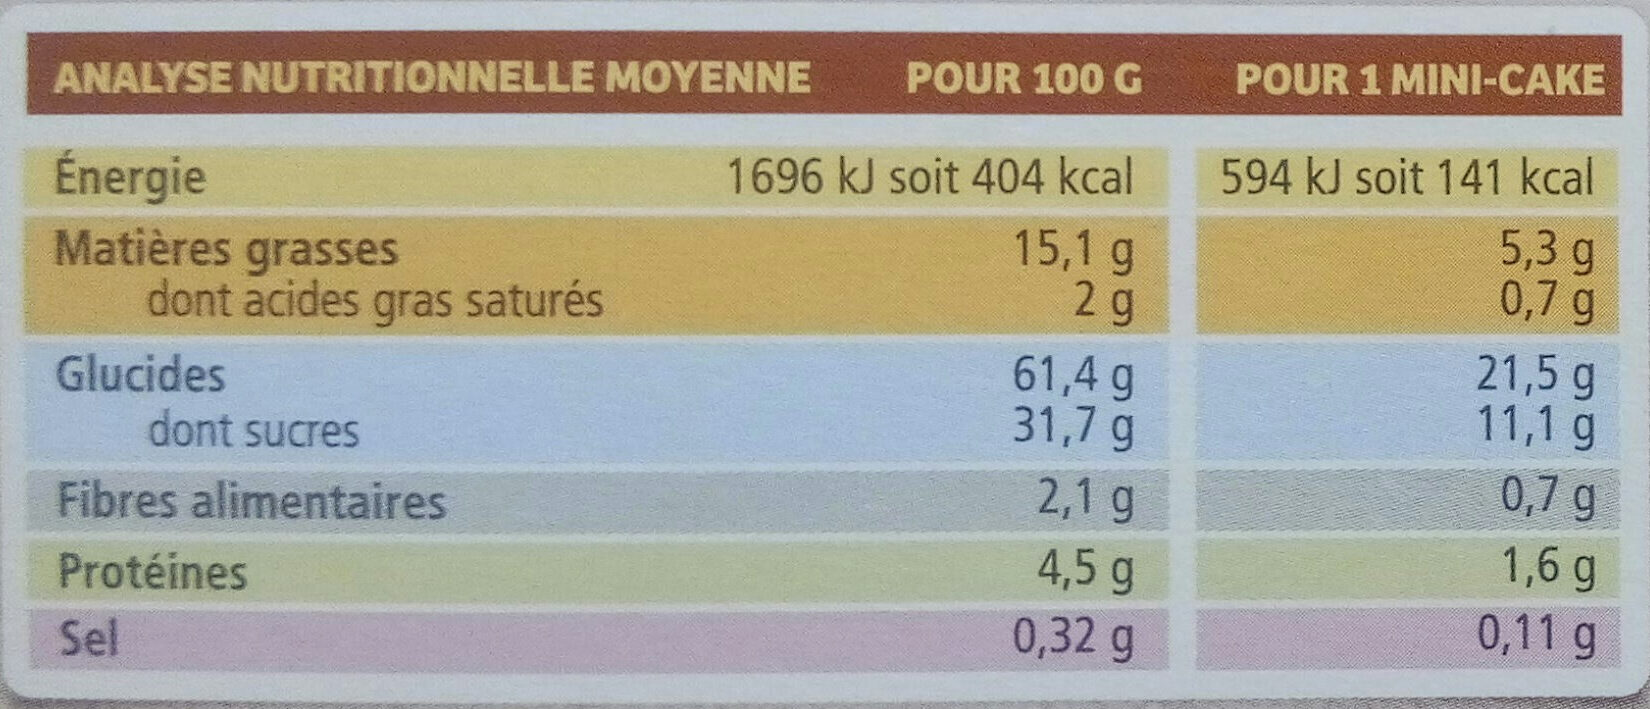 Mini cakes aux fruits - Informations nutritionnelles